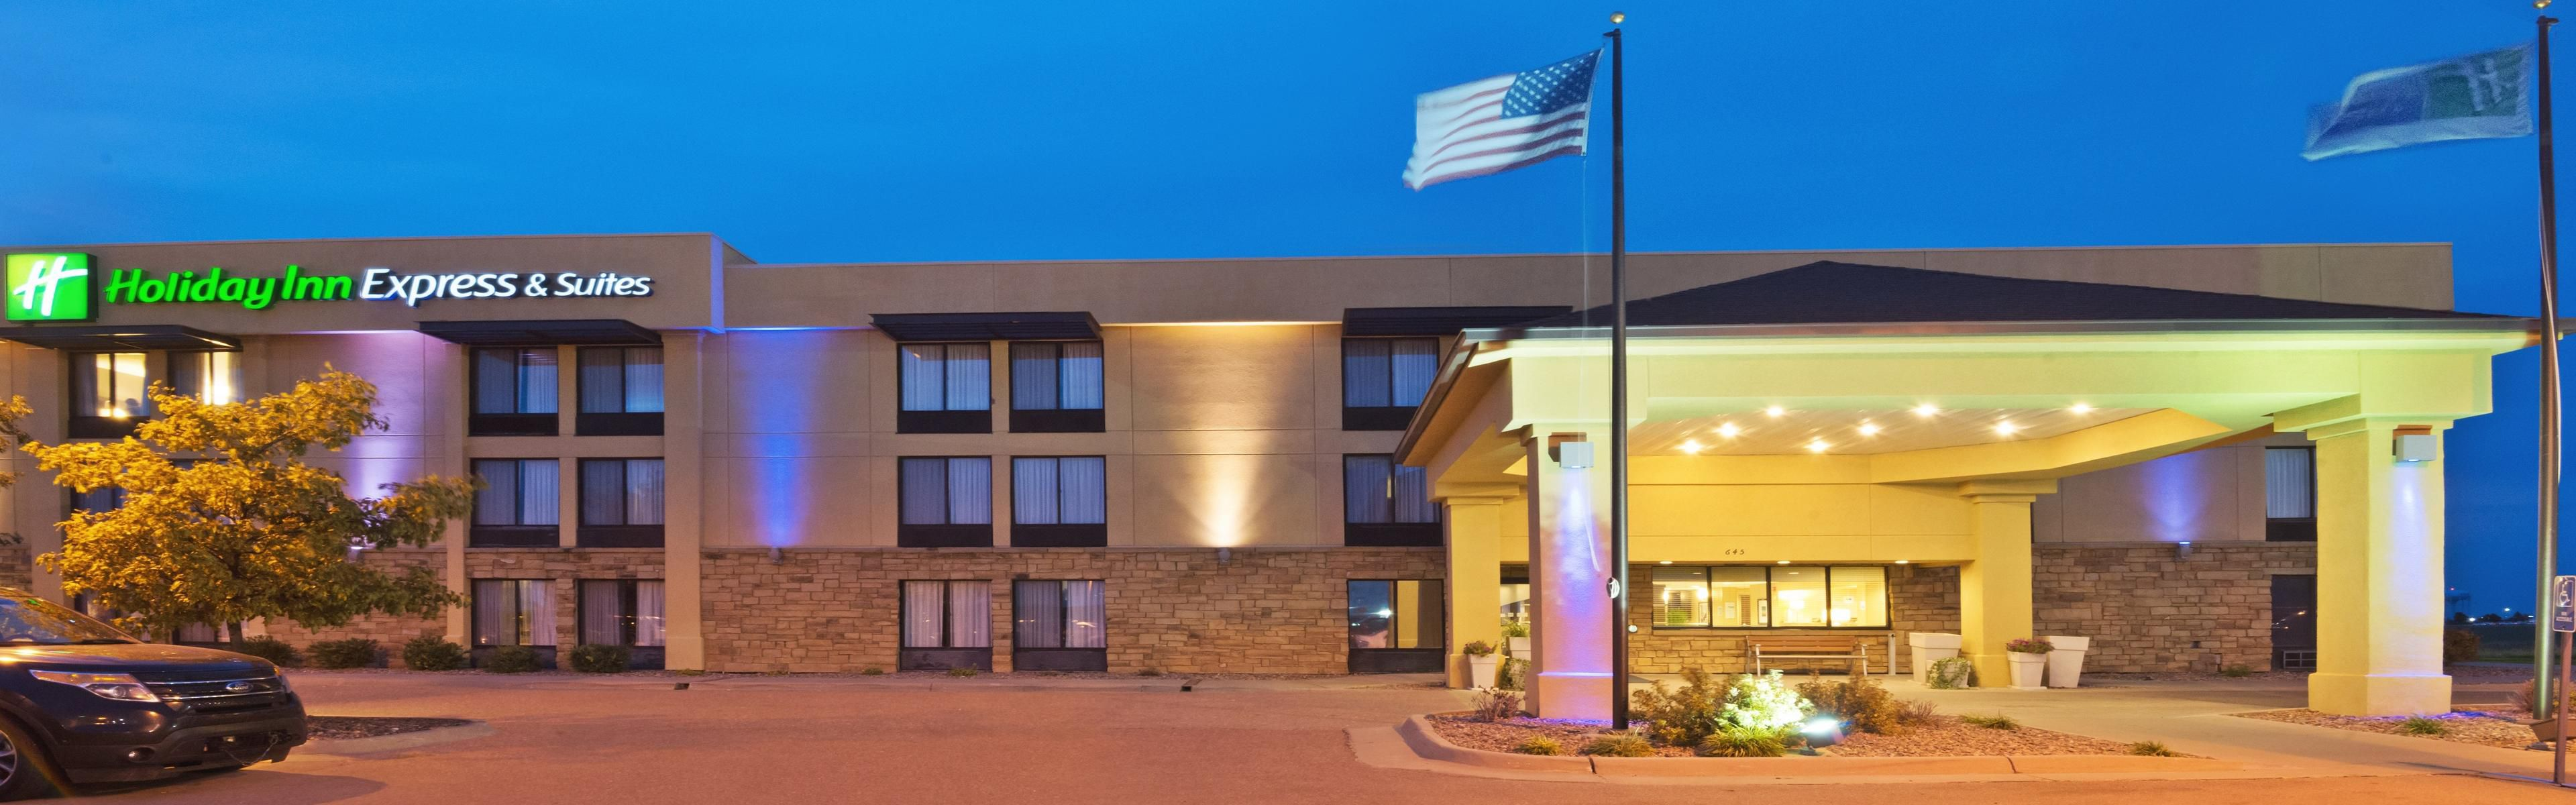 Holiday Inn Express & Suites Colby image 0